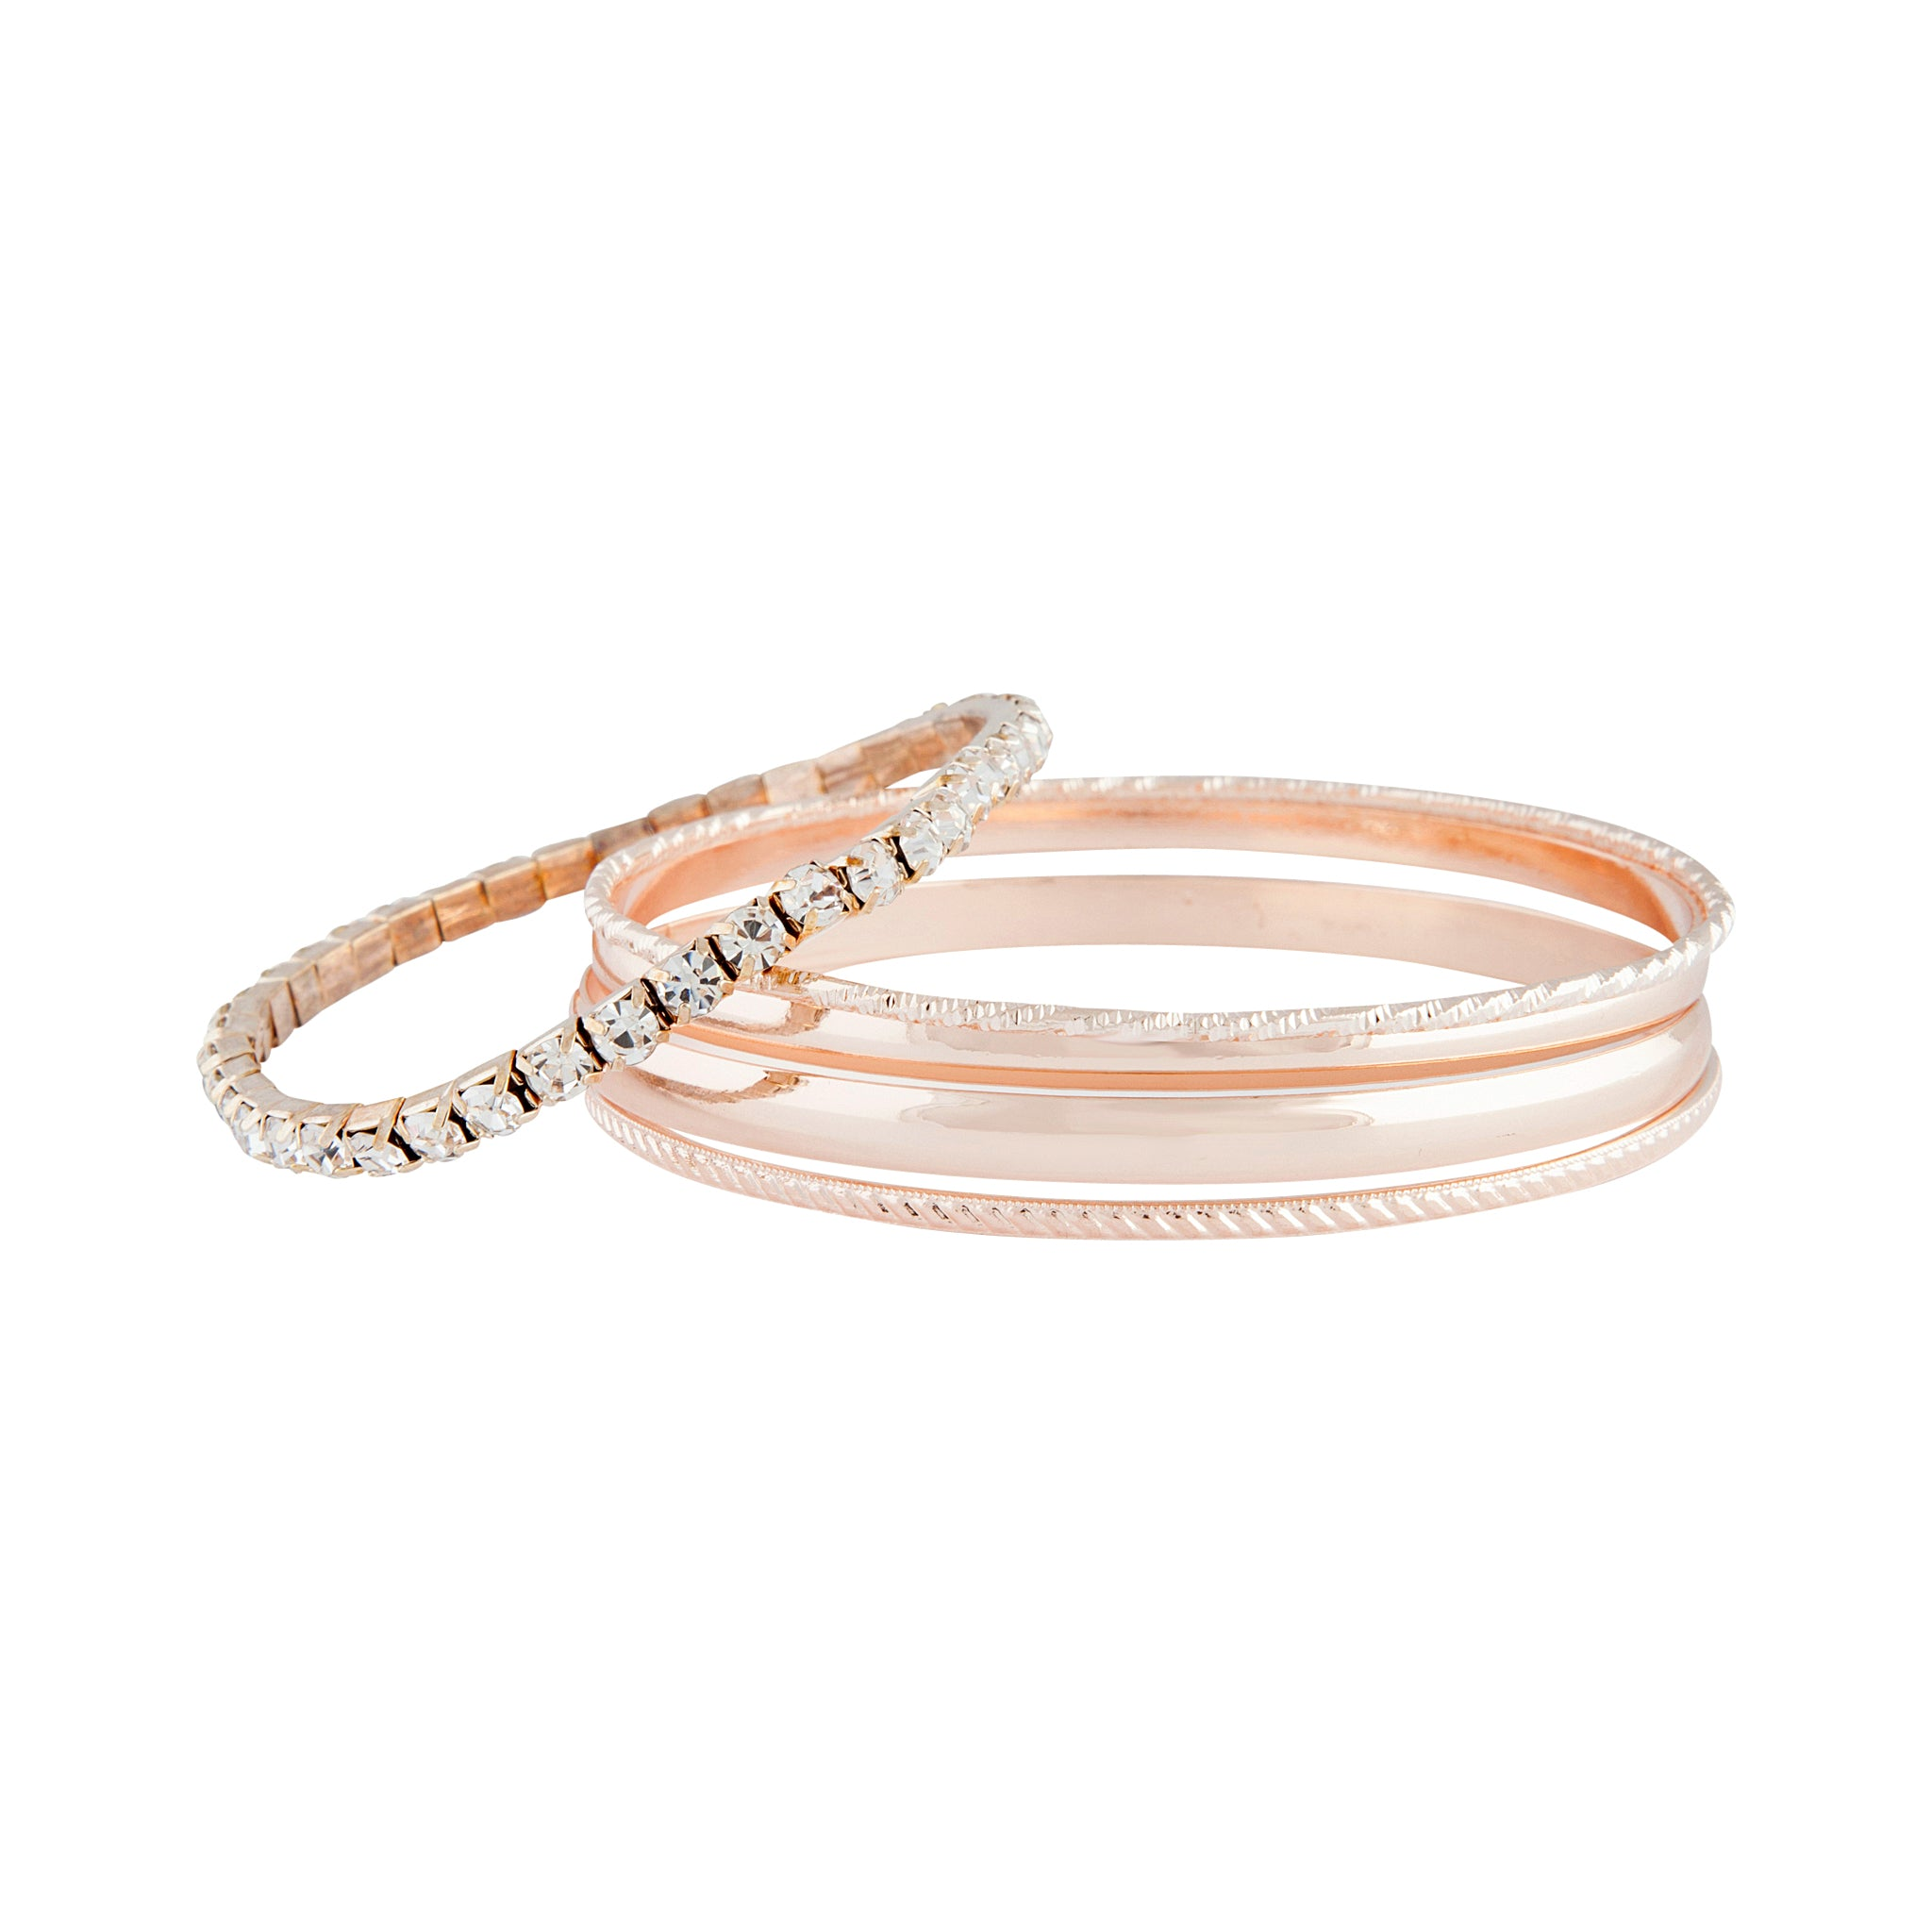 Rose Gold Shiny Duo Bangle 5 Pack